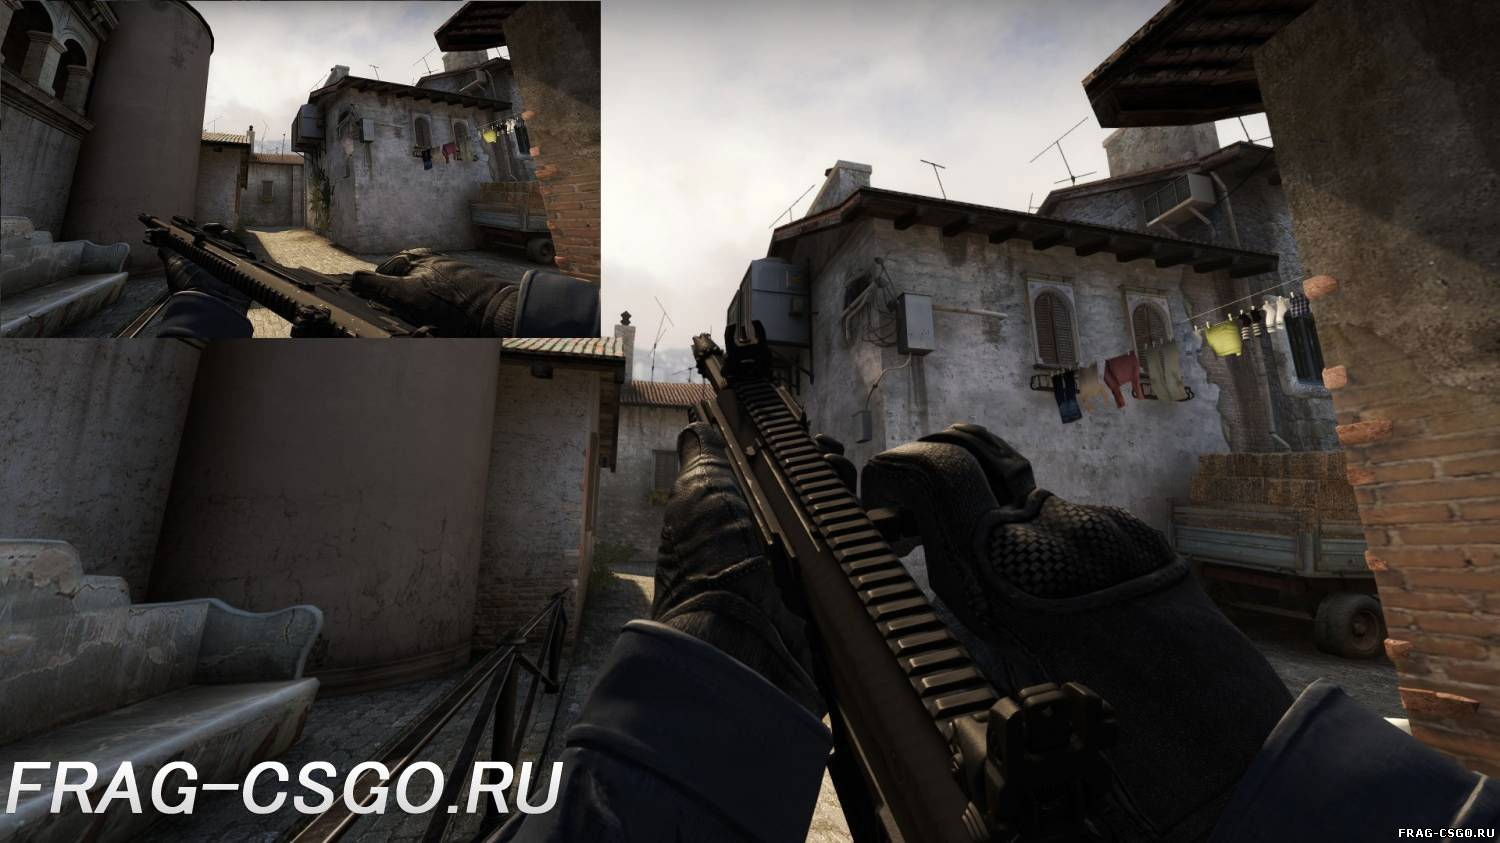 Frag csgo ru steam cs go ошибка unable to authenticate